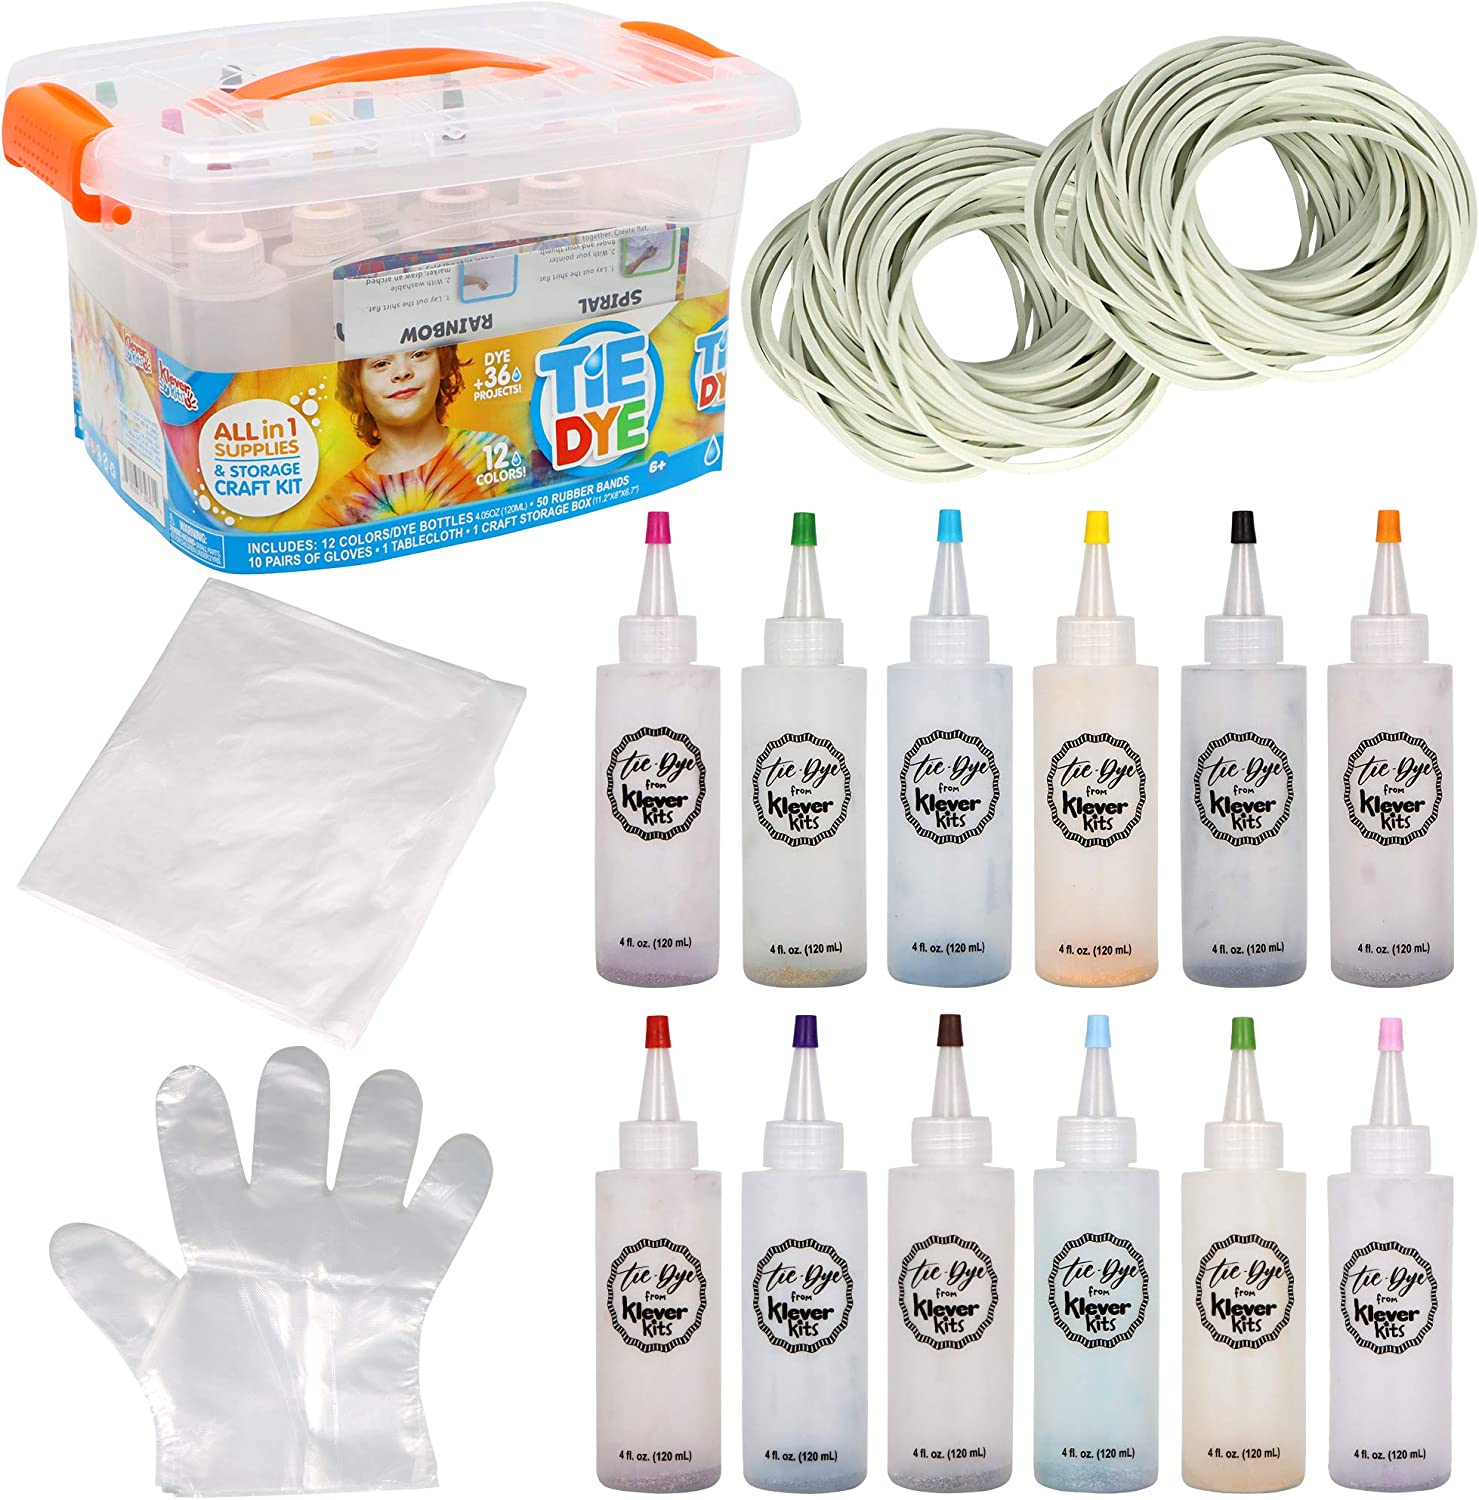 Klever Kits Tie Dye DIY 12 Finally popular brand S with Fabric Manufacturer direct delivery Set Colors Art